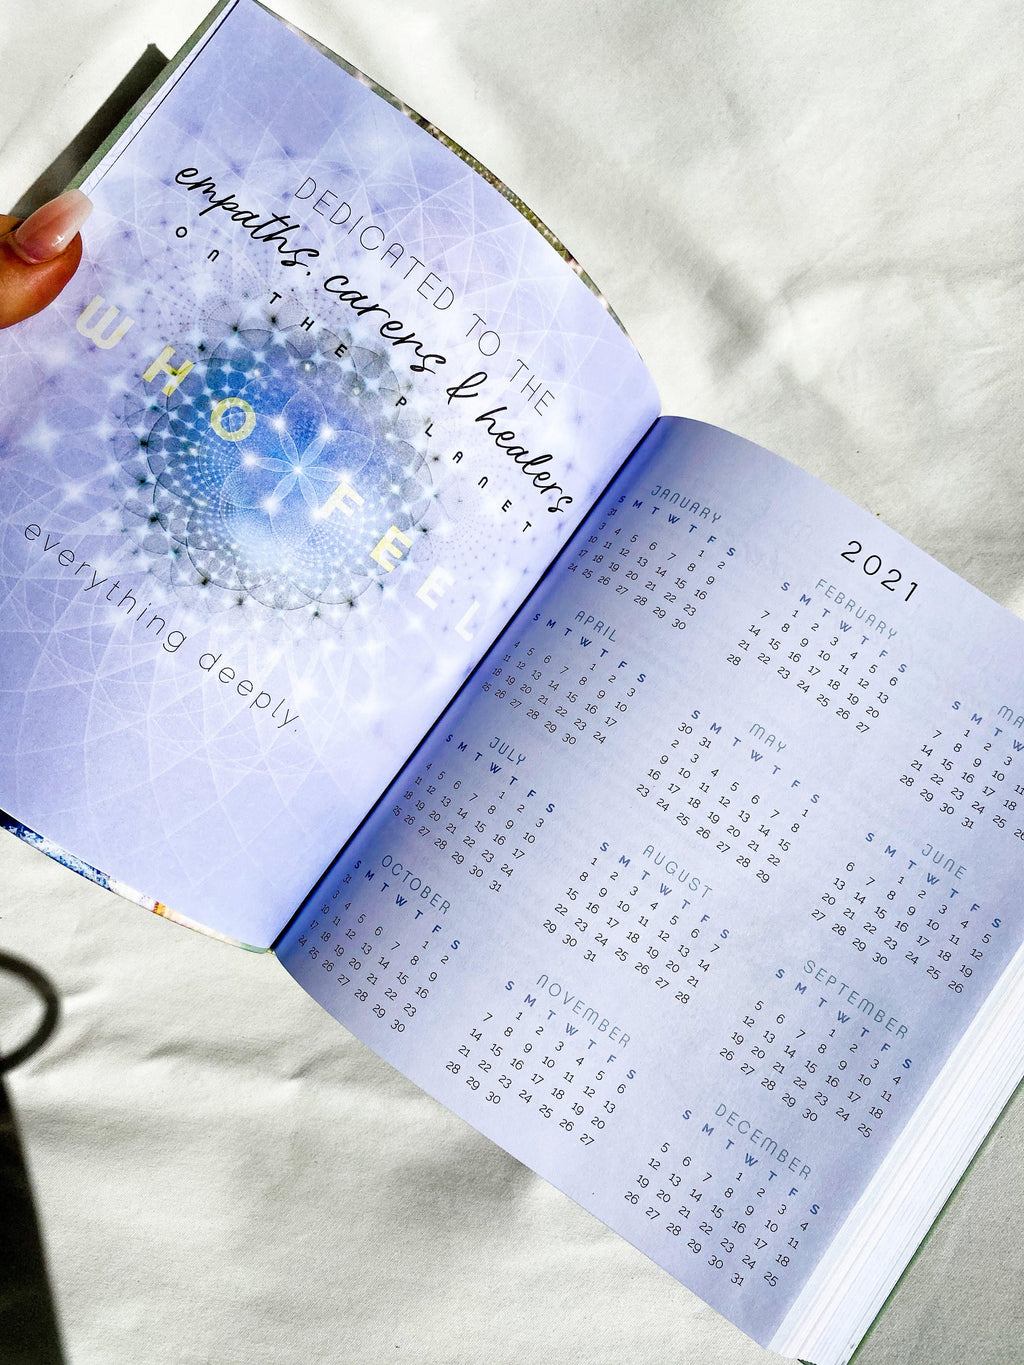 2021 Gratitude Diary - Unearthed Crystals